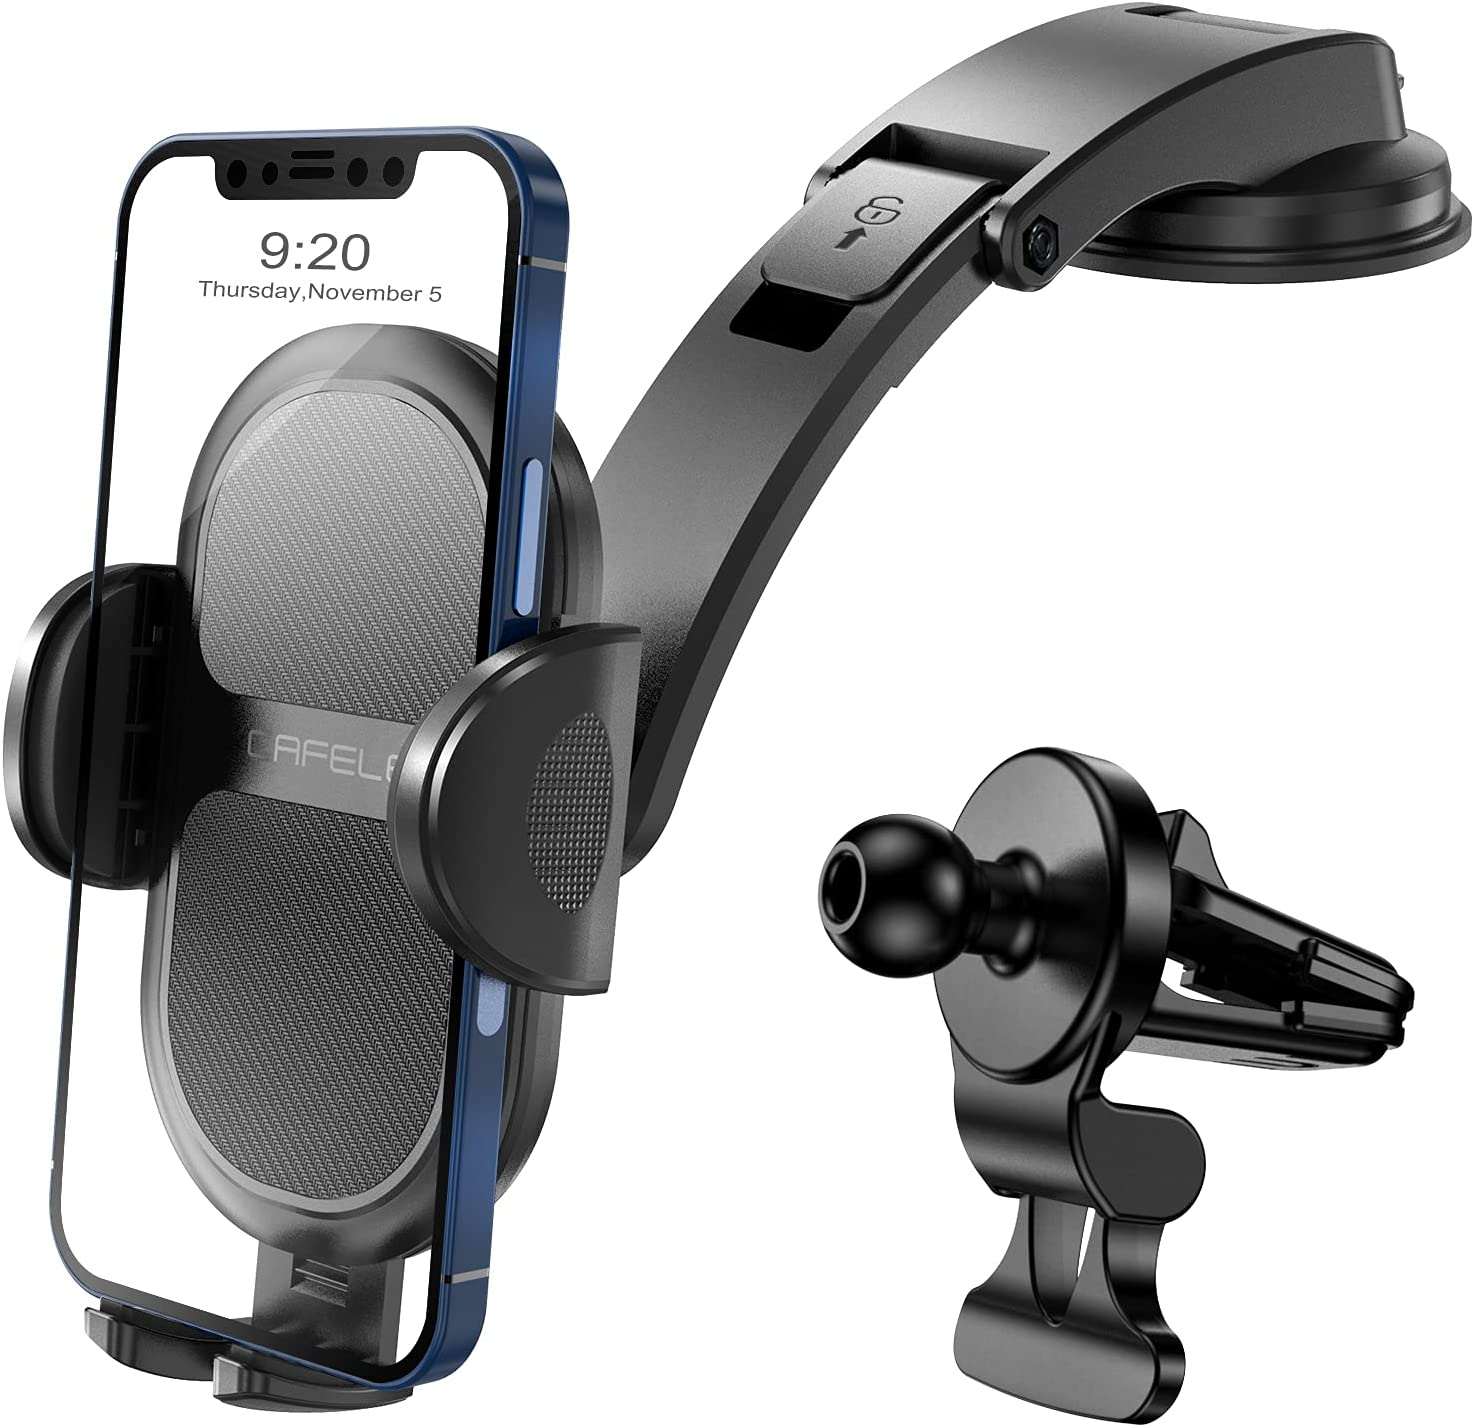 CAFELE Car Dedication Phone Holder Mount Dashboard Bombing new work Cell for C